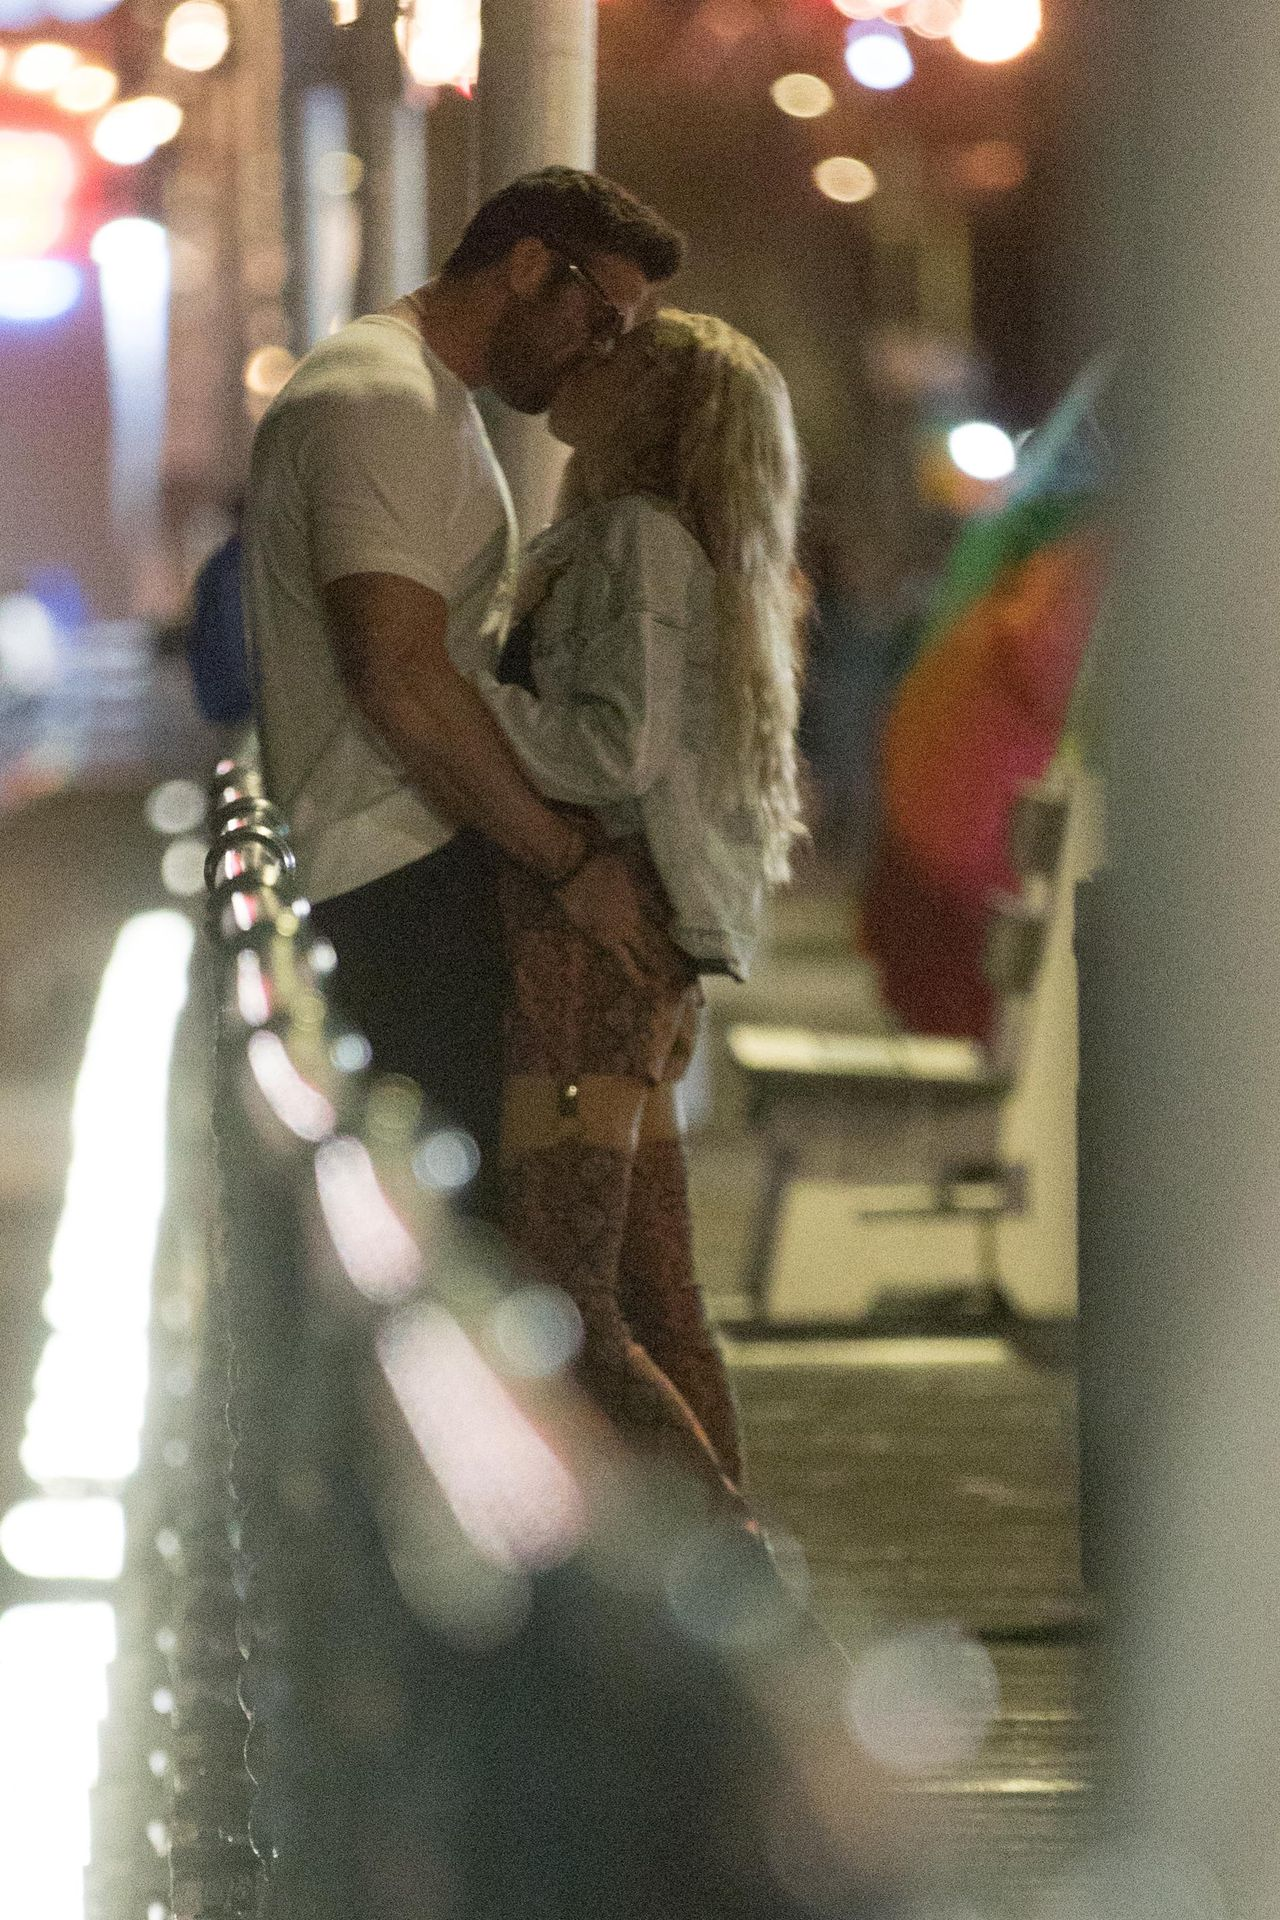 Chad Johnson & Annalise Mishler Are Seen On A Low Key Date At The Santa Monica Pier 0001